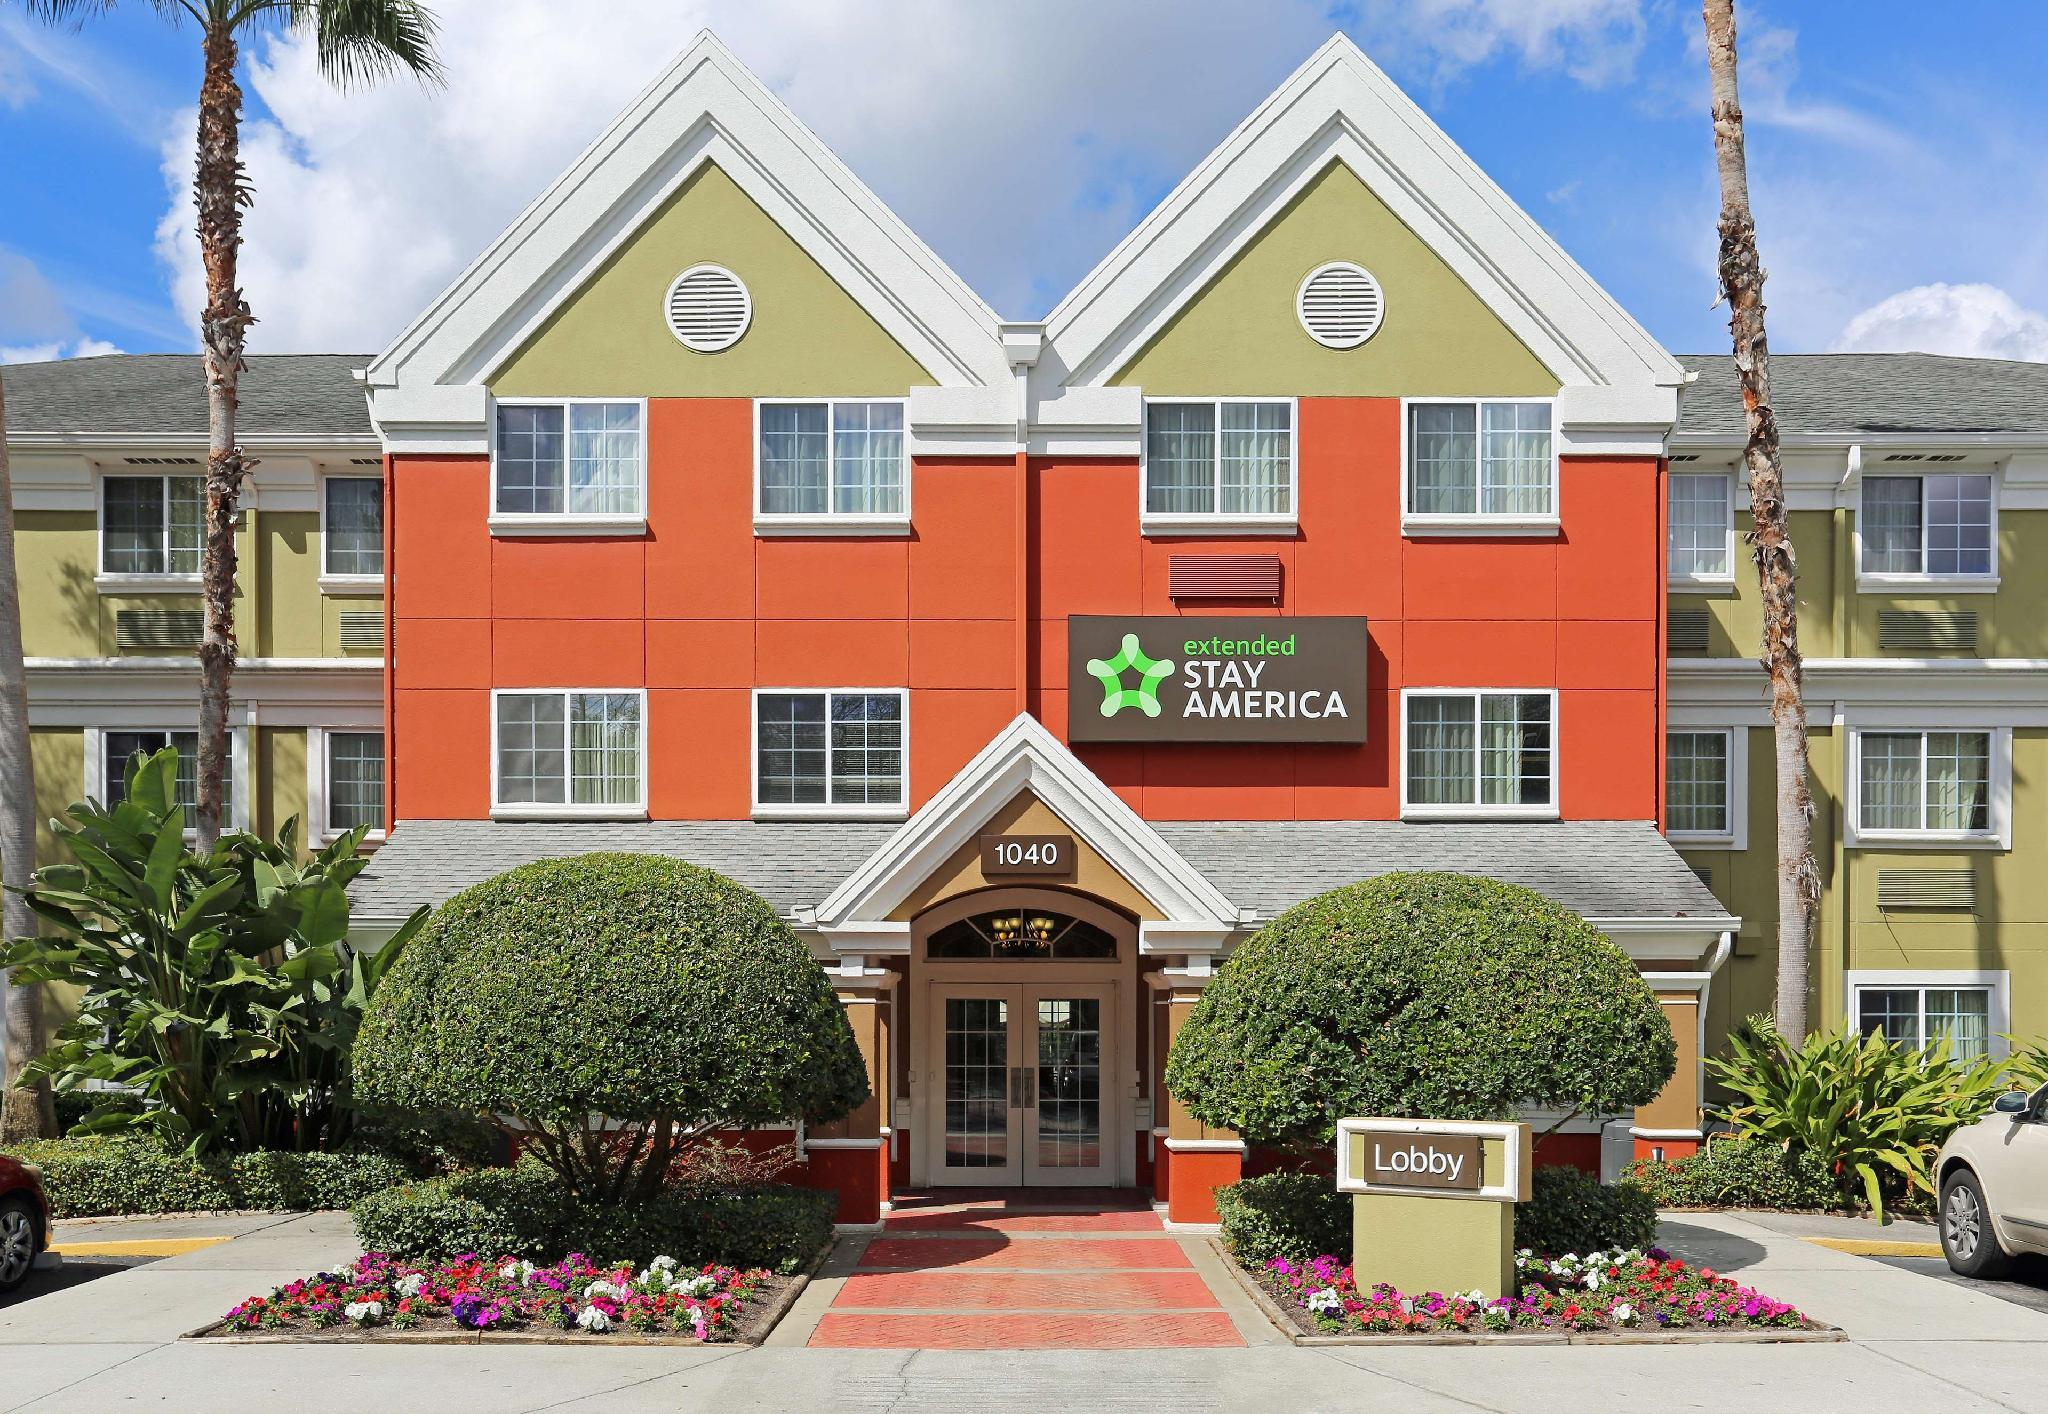 Extended Stay America Lake Mary 1040 Greenwood Blv